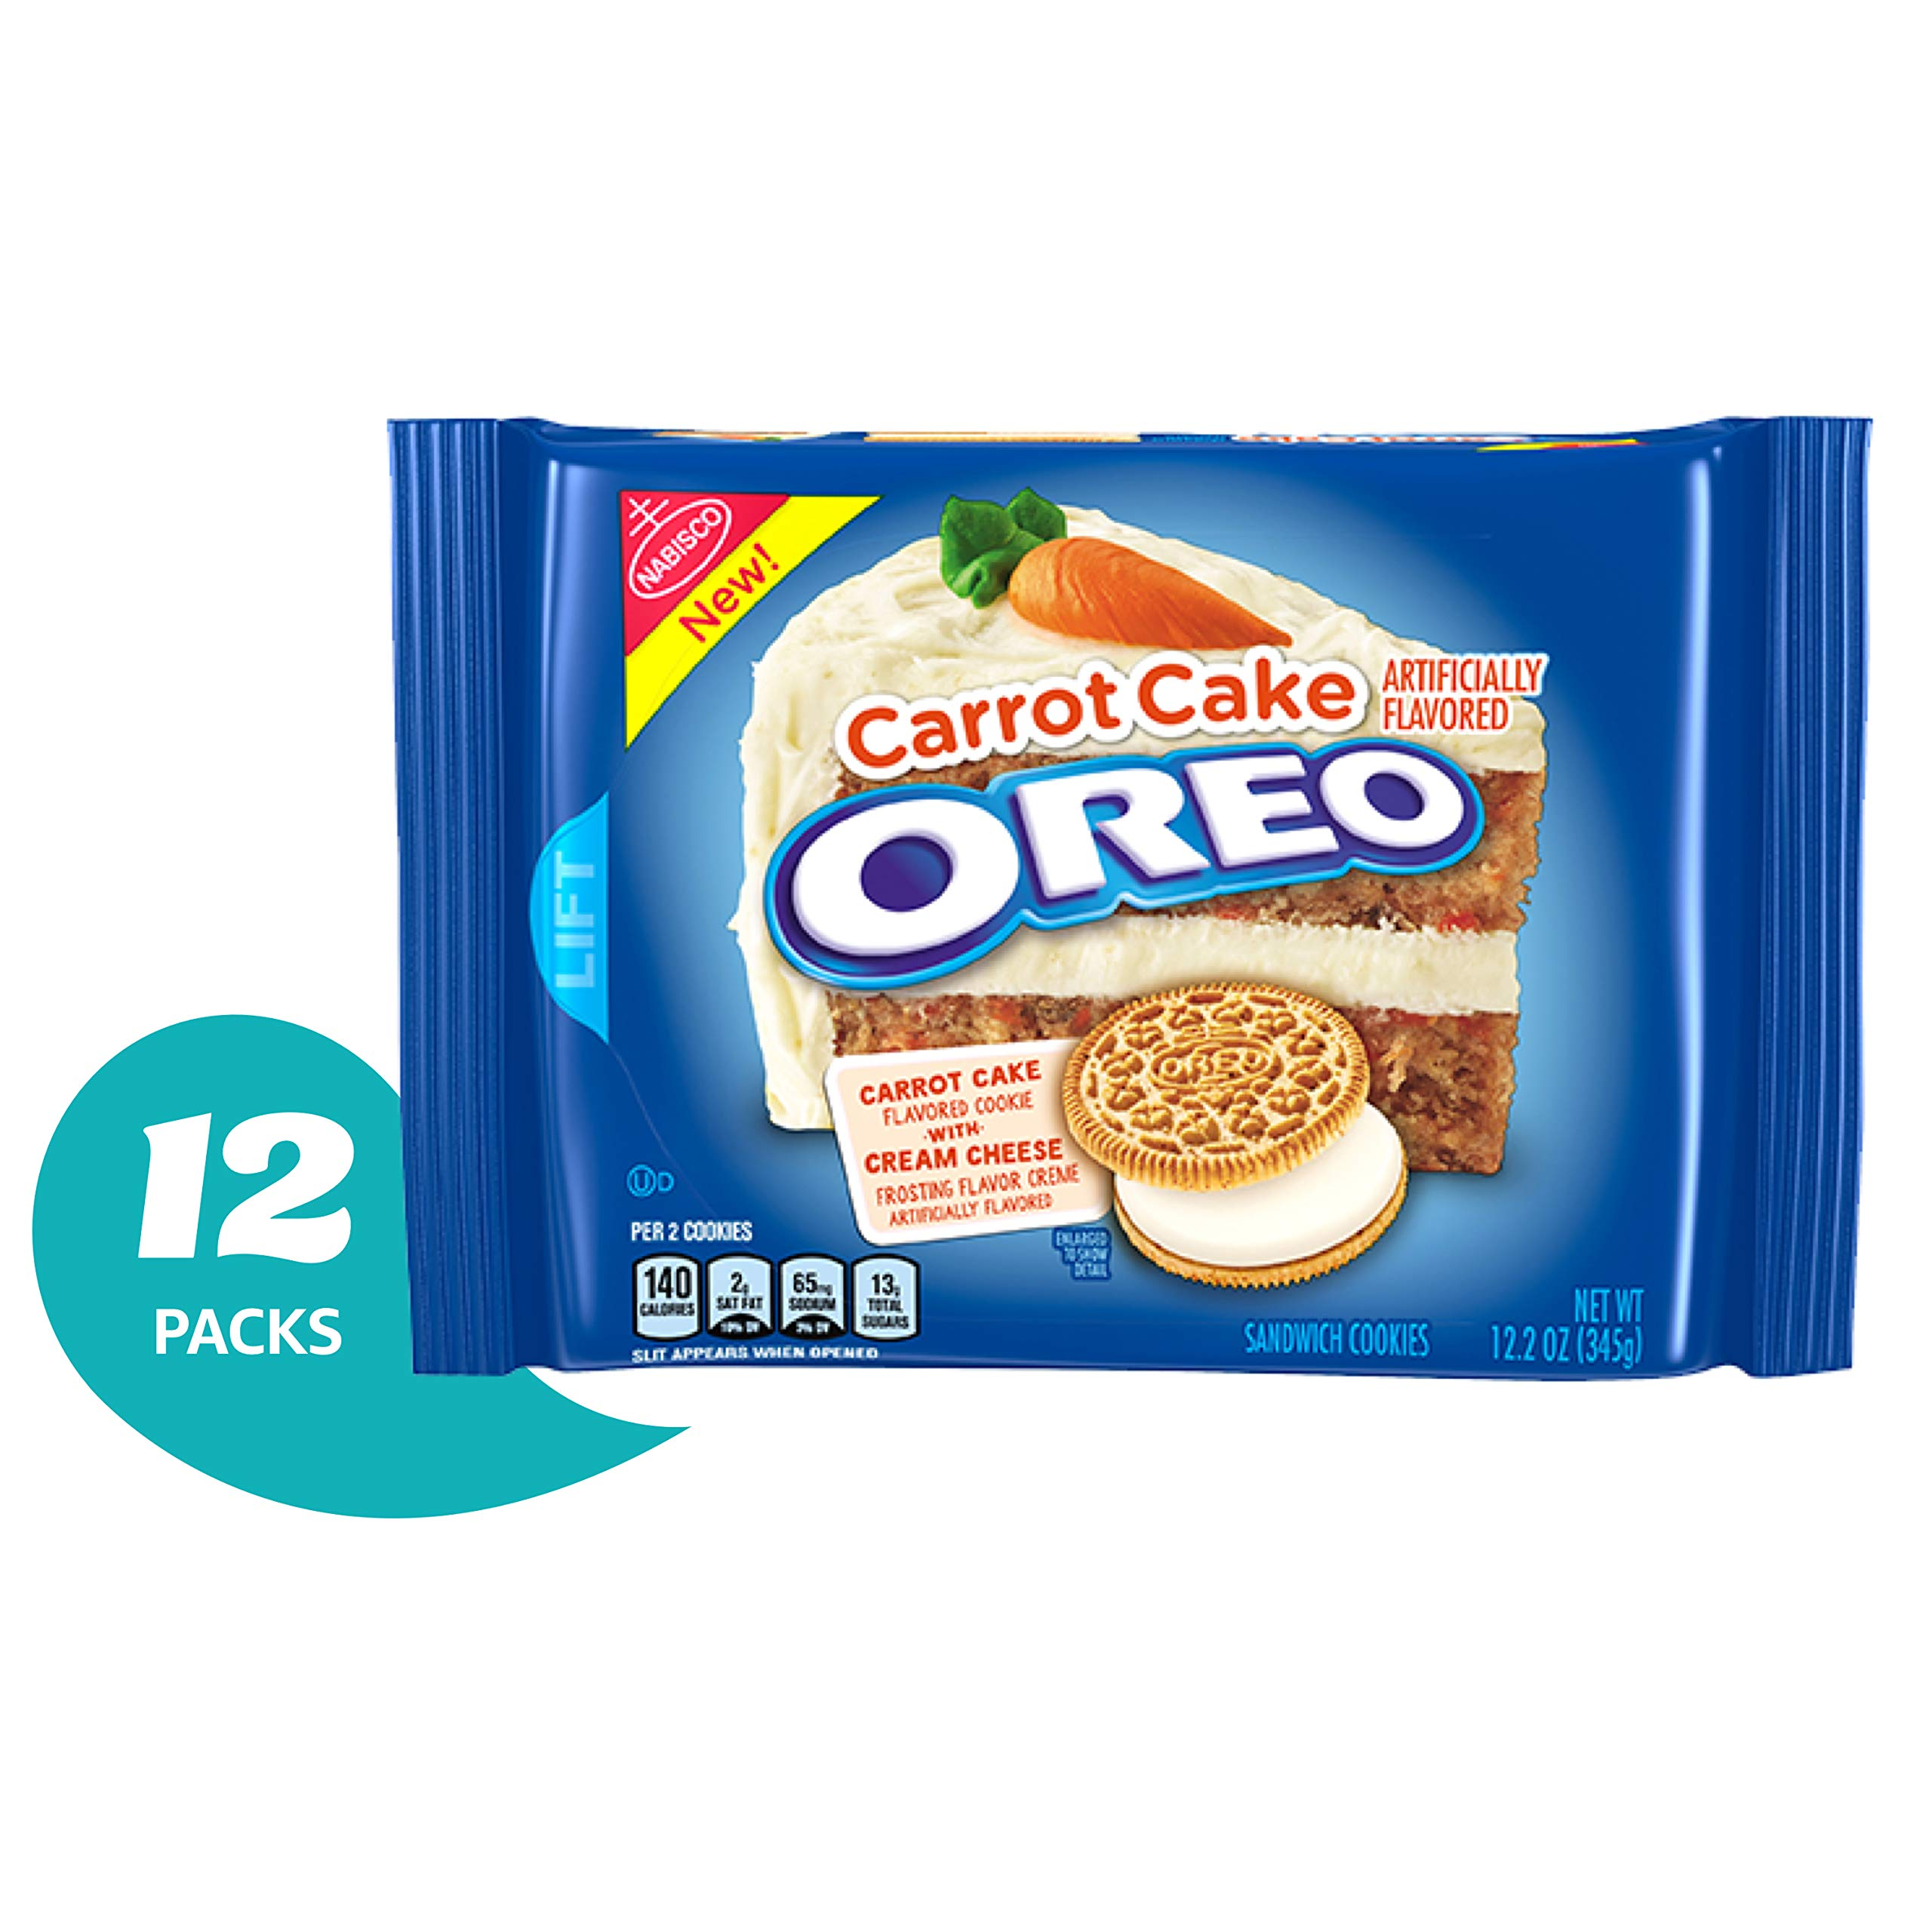 OREO Carrot Cake Cookie, 12 Count by Oreo (Image #4)